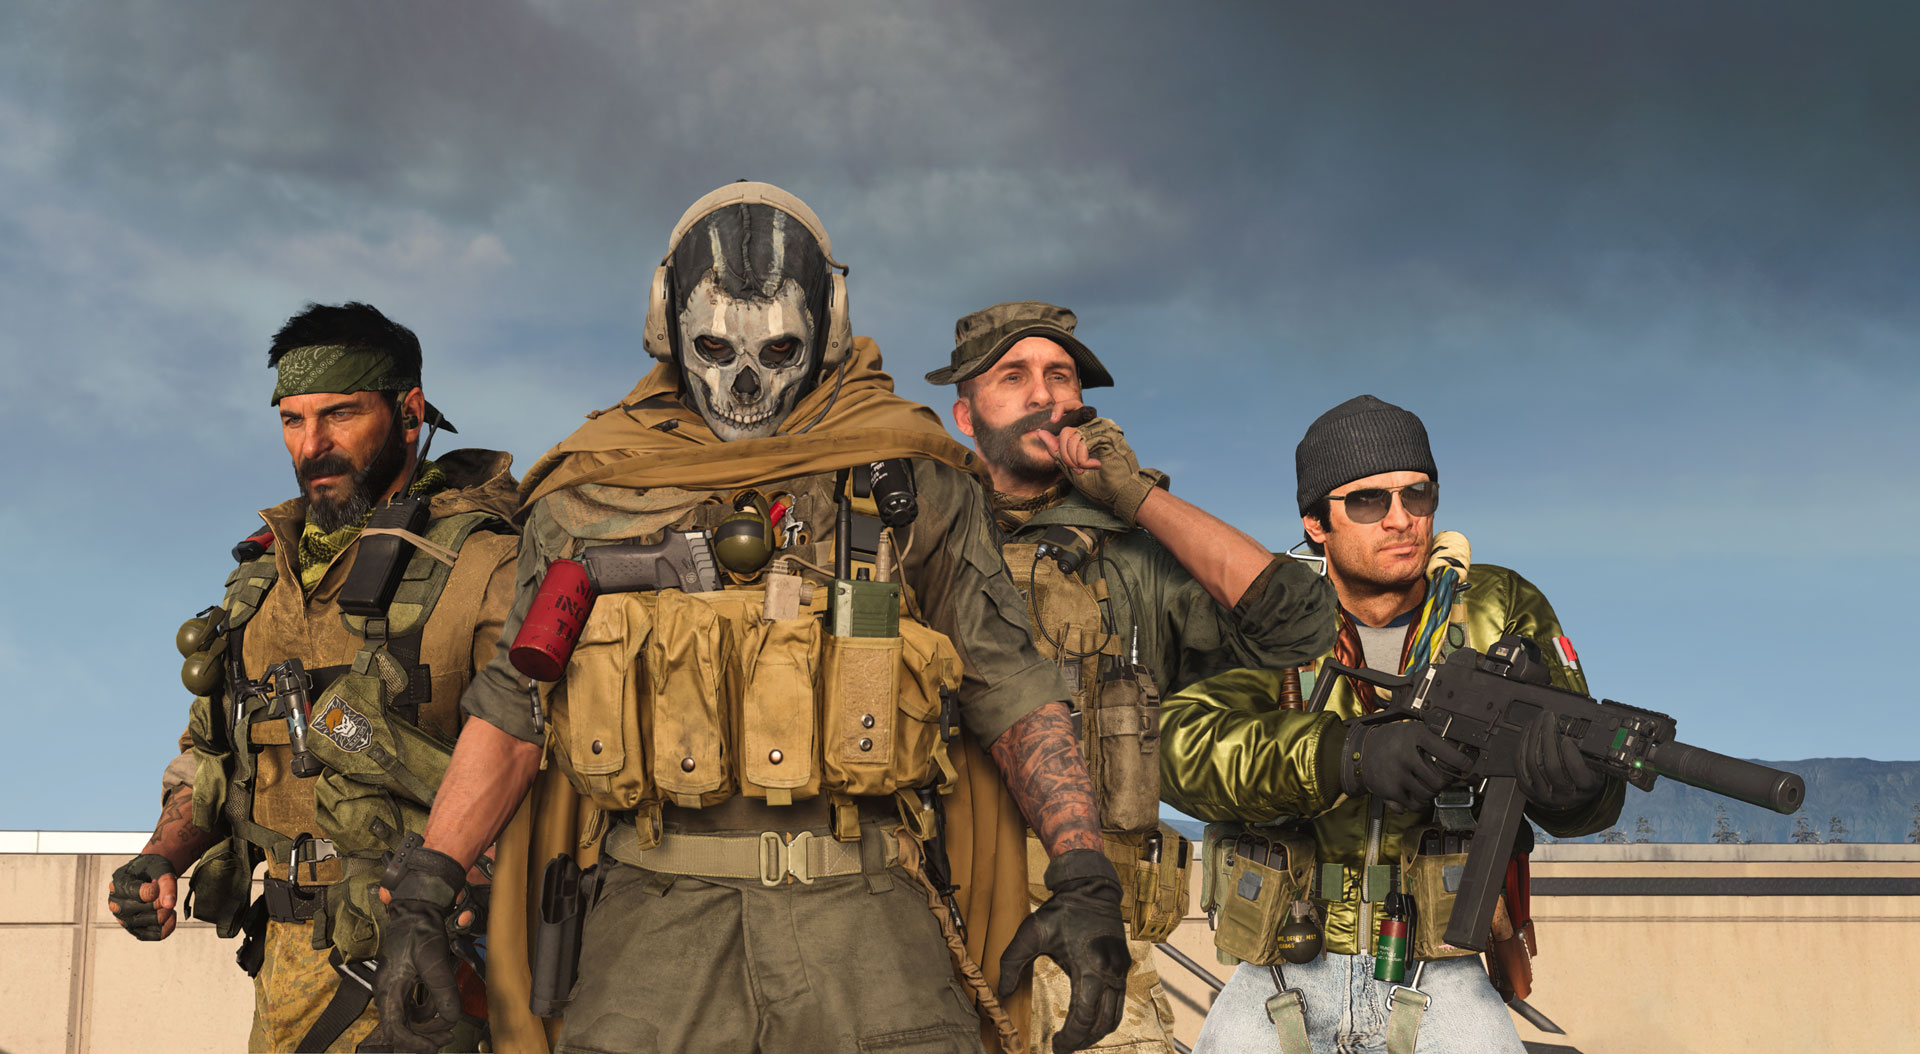 Frank Woods, Ghost, Price, and Adler as they appear in Call of Duty Warzone